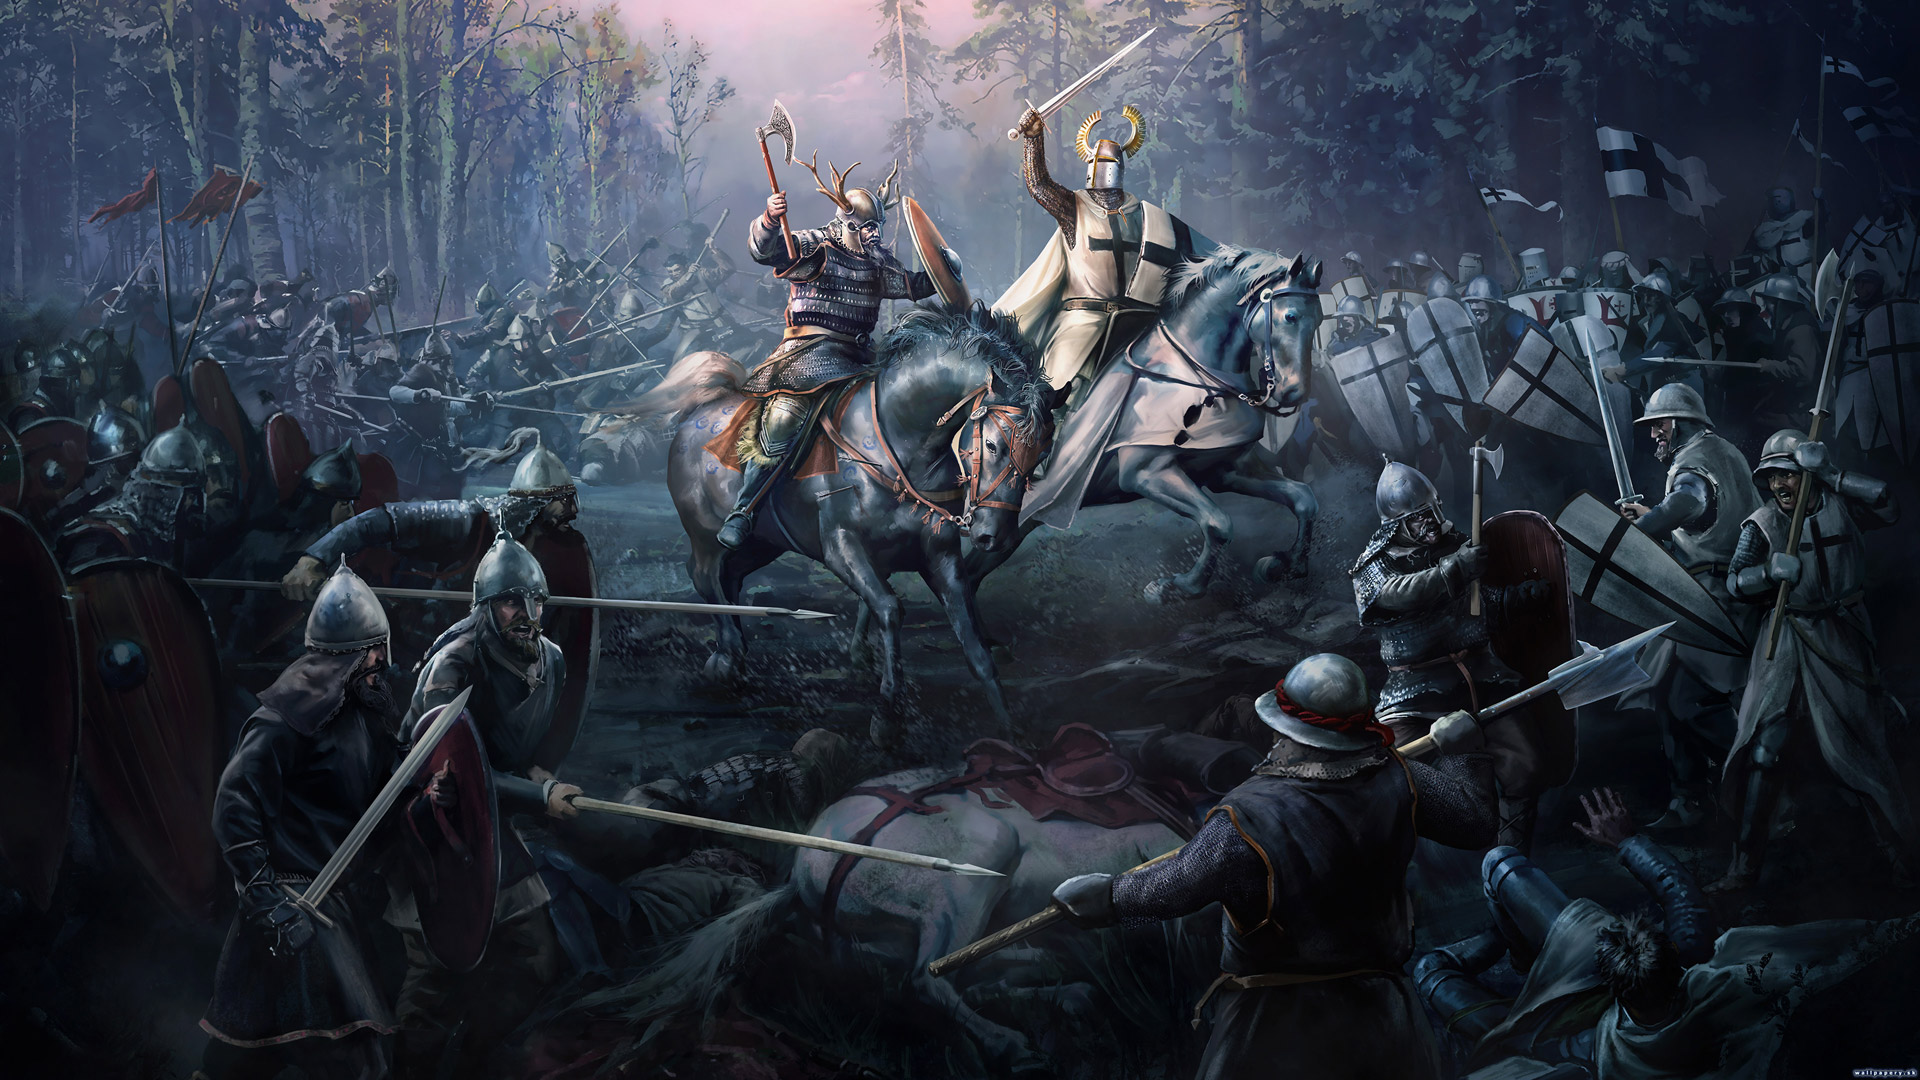 Free Crusader Kings II Wallpaper in 1920x1080